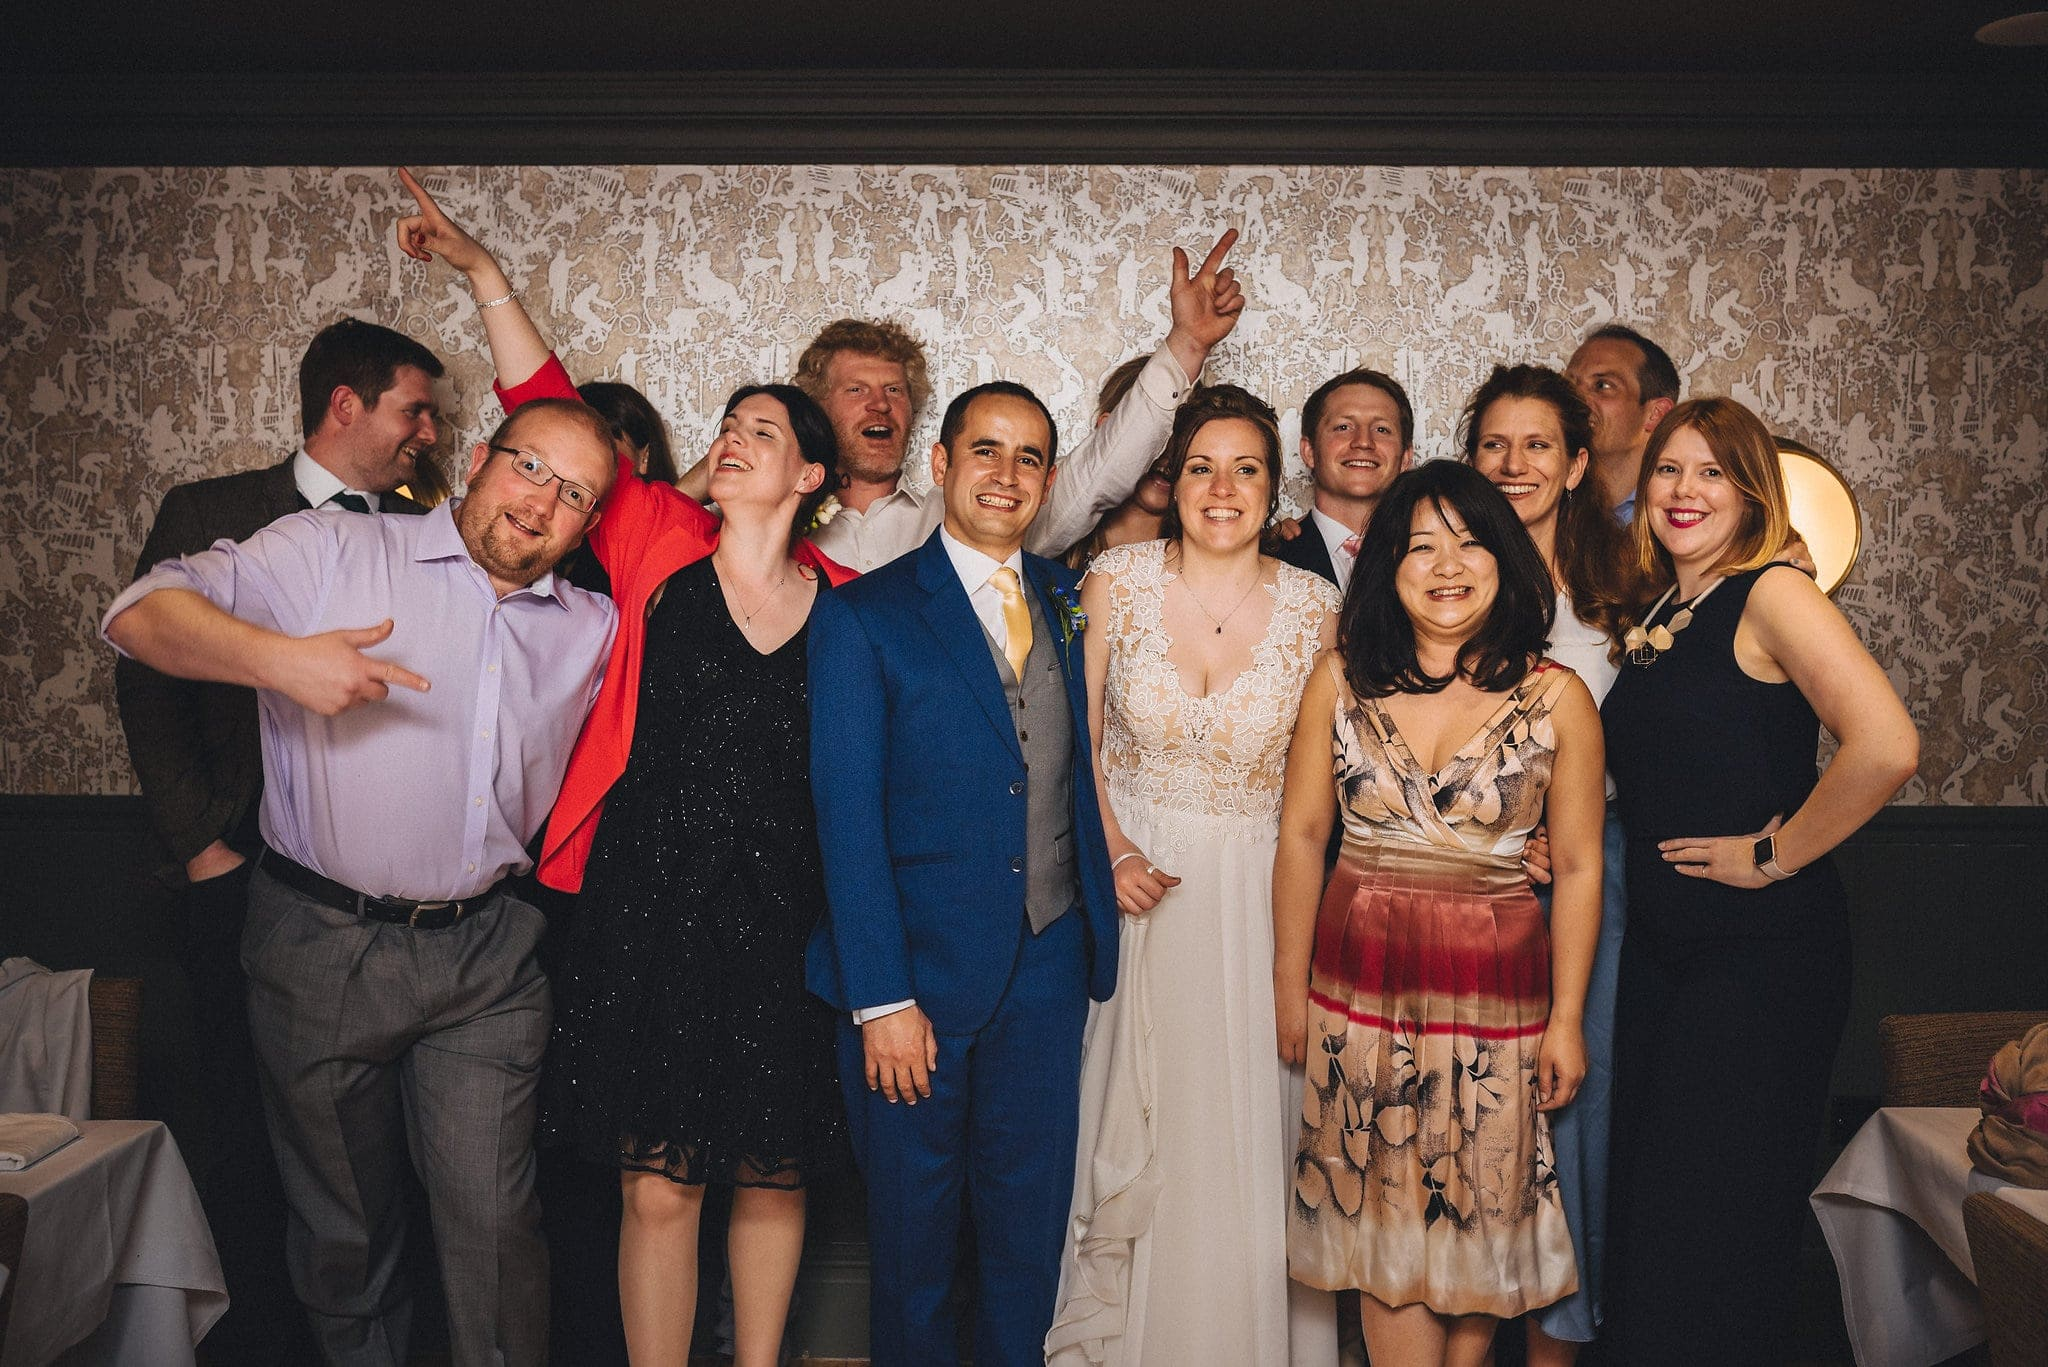 Fun wedding group shot